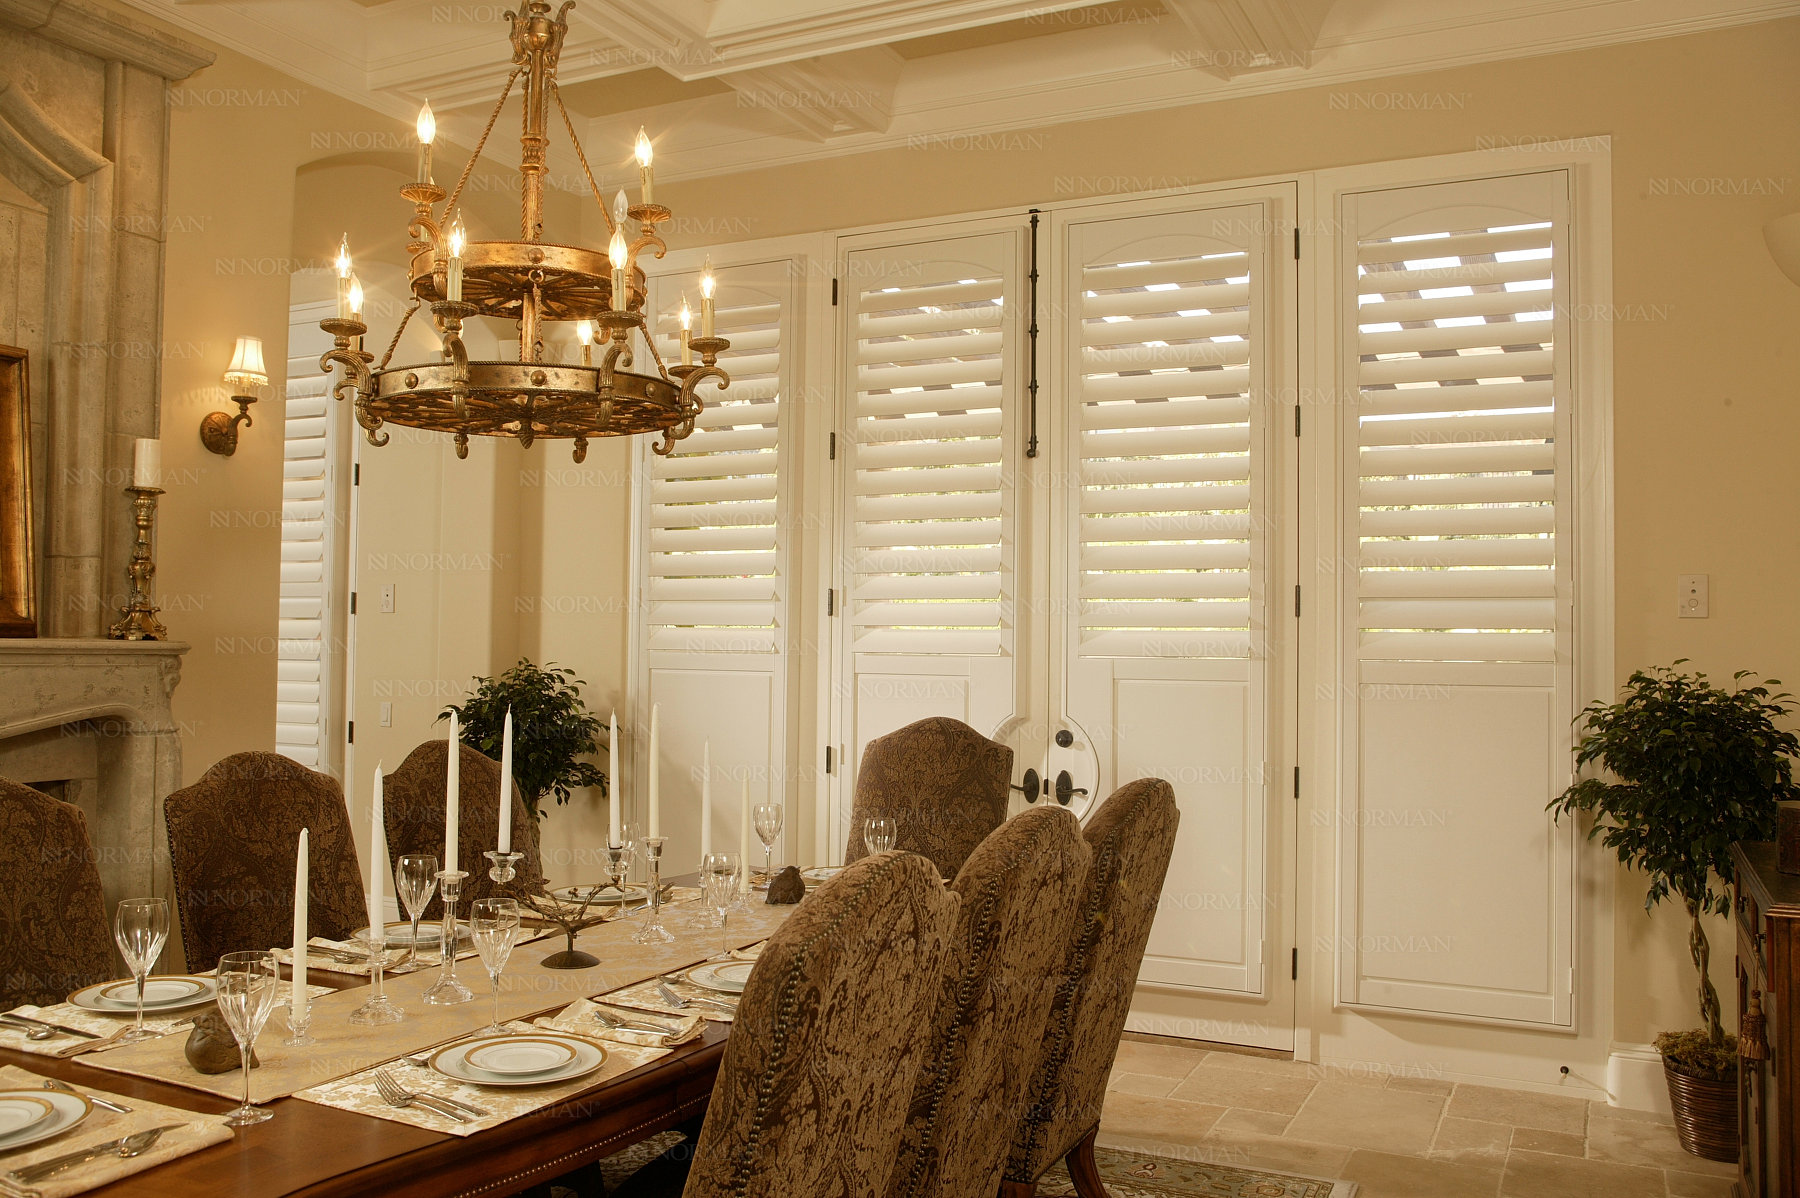 Blinds Direct-Blinds, Shutters, Draperies, Wall Paper | Blinds ...